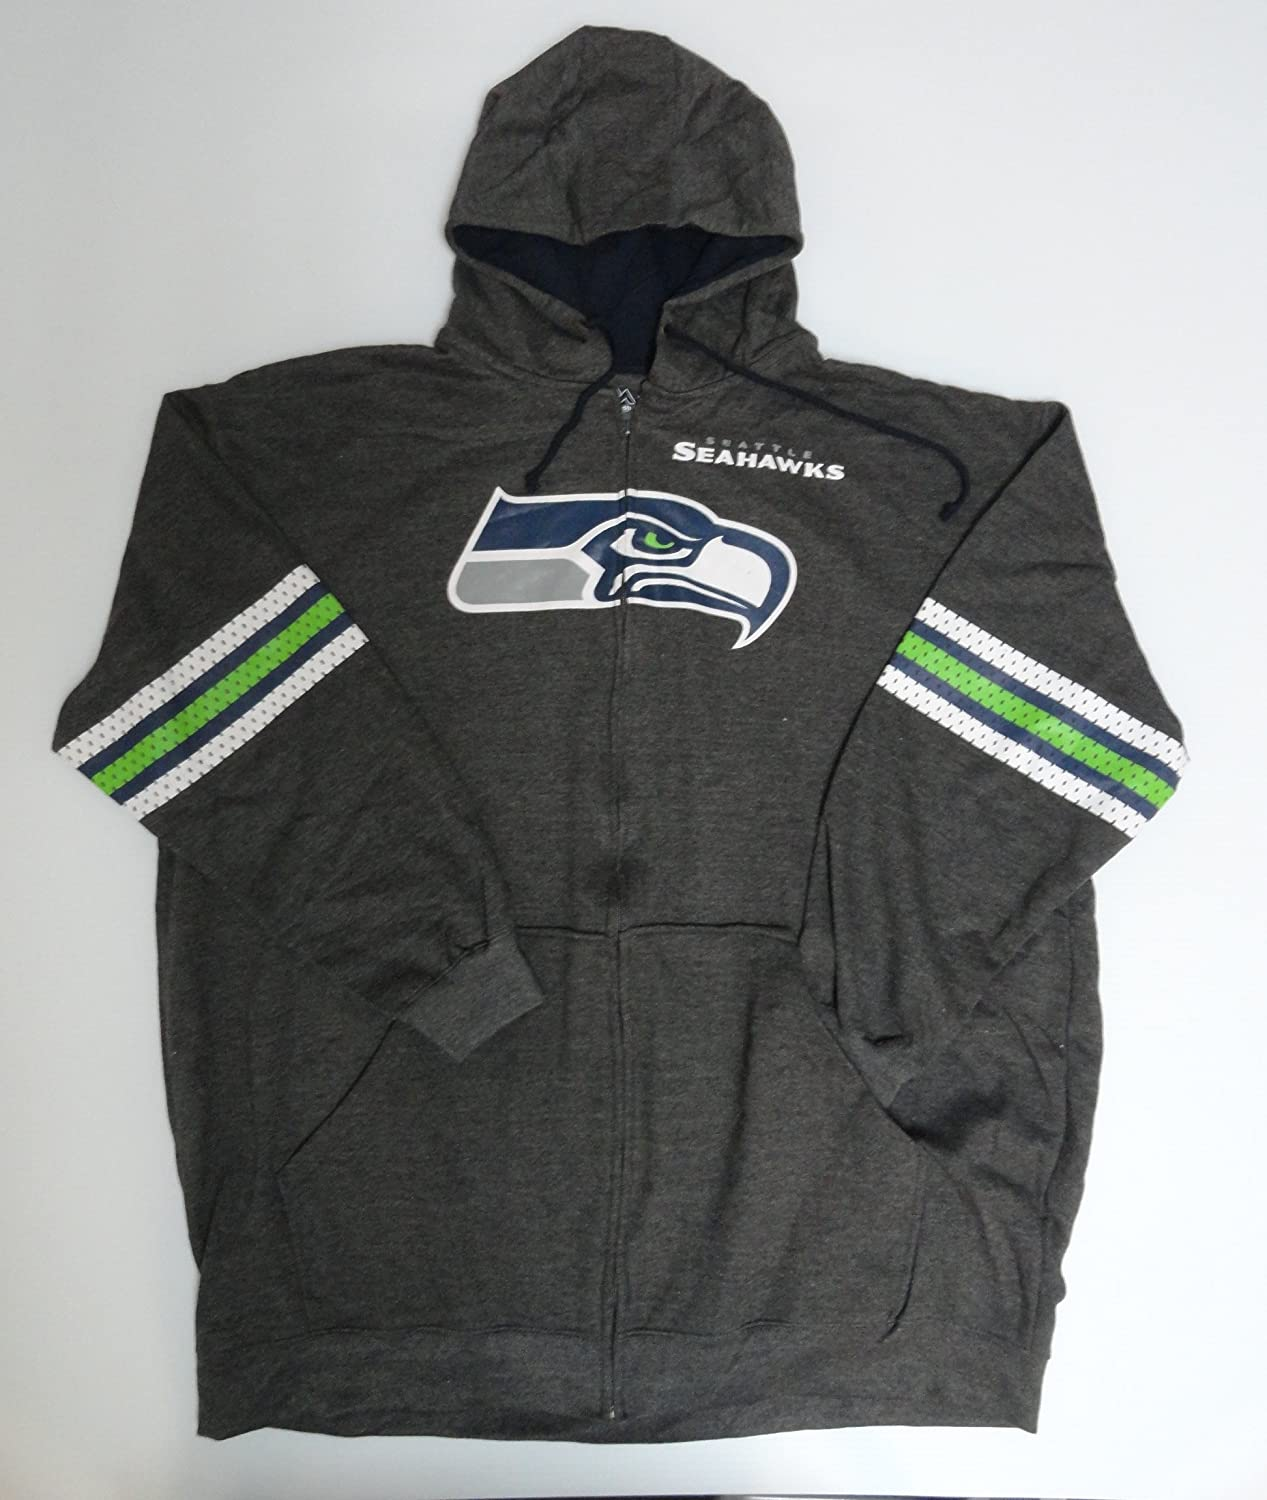 443ab2609 Amazon.com   Majestic NFL Licensed Seattle Seahawks Charcoal Full Zip Hoodie  Sweatshirt Jacket Name and Logo Front (4XT)   Sports   Outdoors